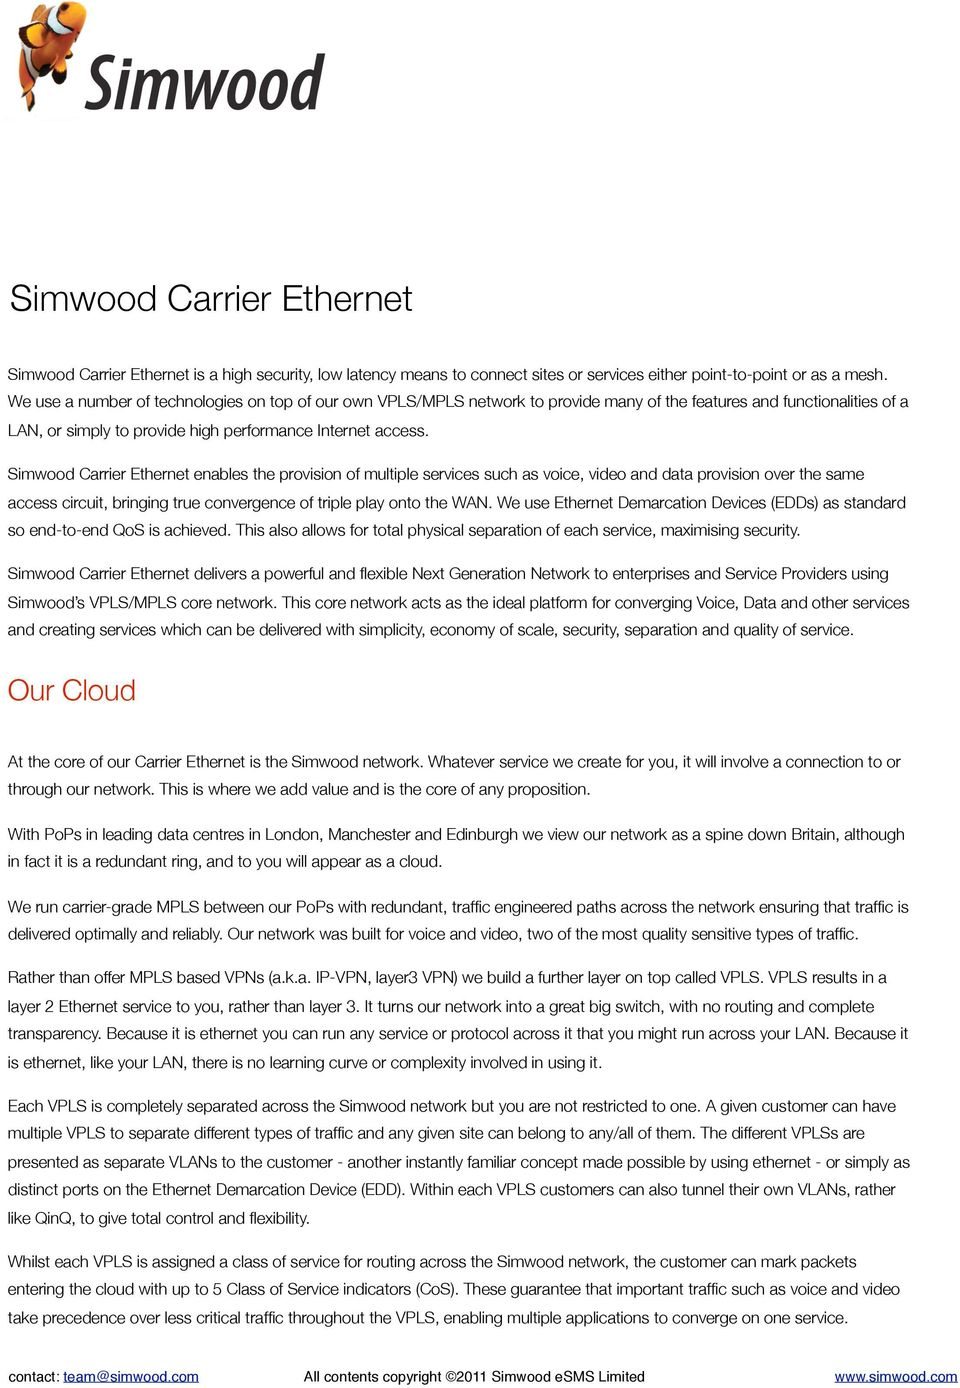 Simwood Carrier Ethernet enables the provision of multiple services such as voice, video and data provision over the same access circuit, bringing true convergence of triple play onto the WAN.